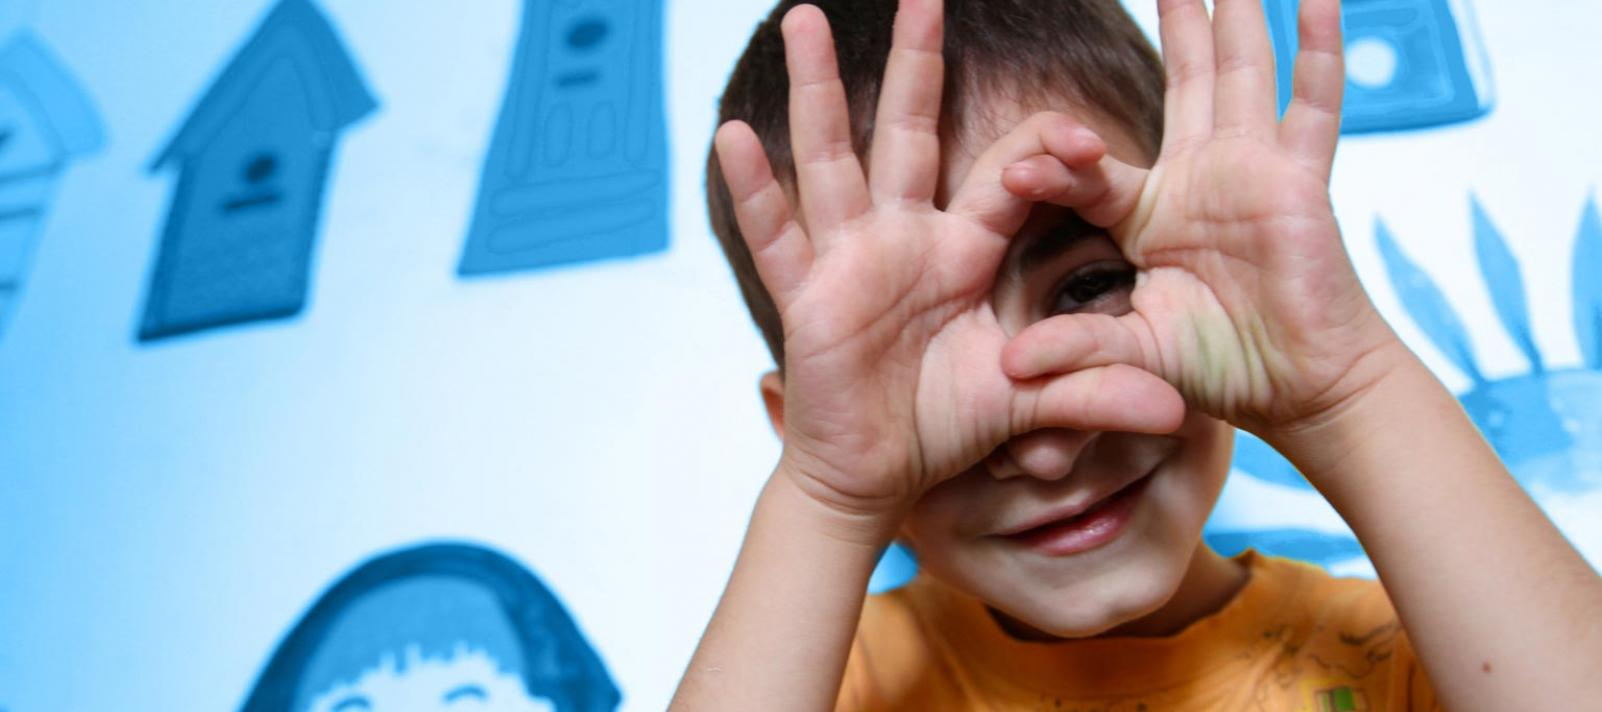 A child peers through his fingers towards the camera